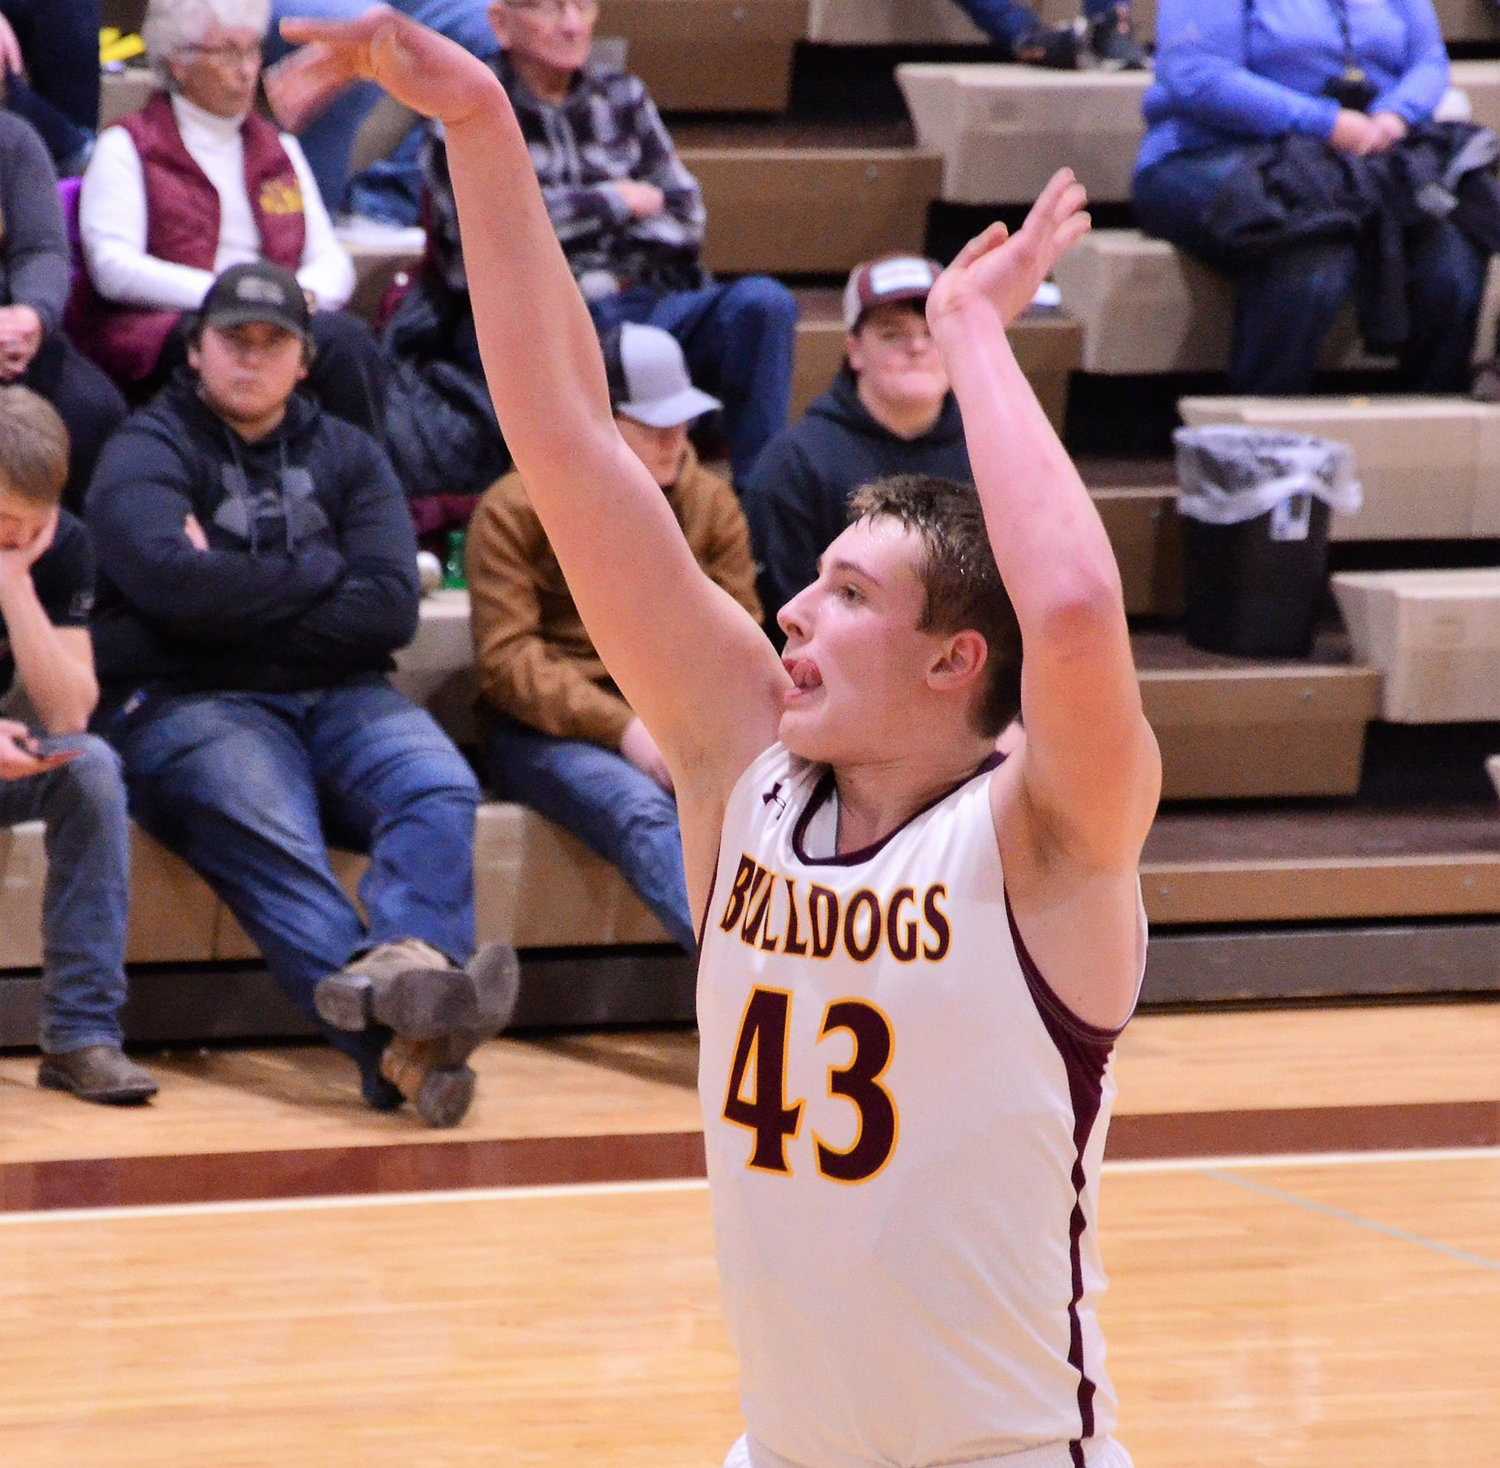 Left: Damon Wilkinson shoots free throws at Monday's game against the Deuel Cardinals.